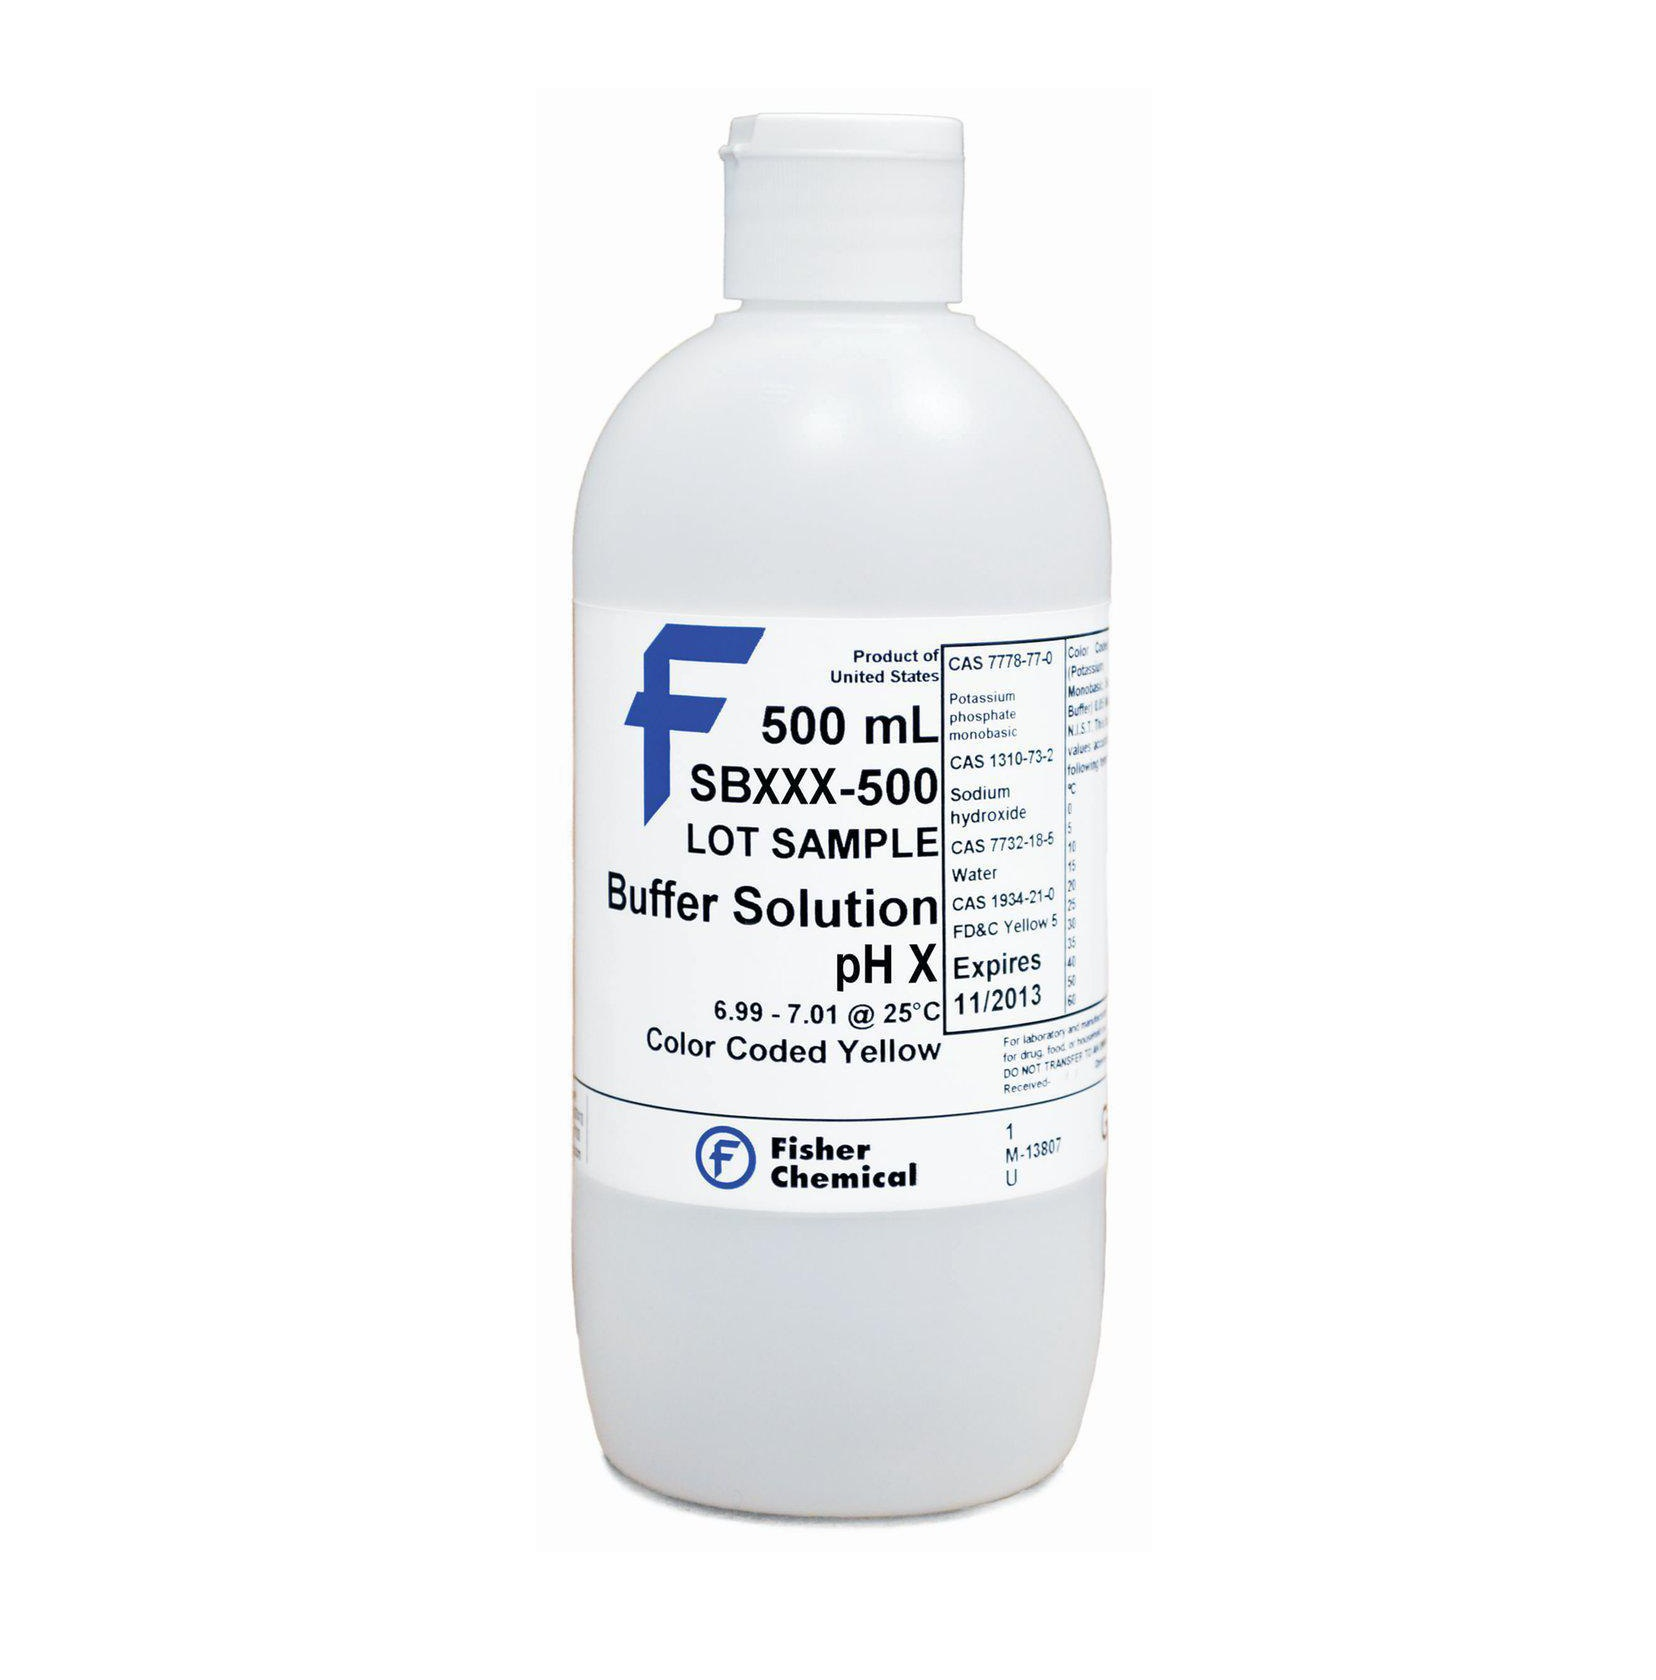 Buffer Solution, pH 10.00, Color-Coded Blue (Certified), Fisher Chemical